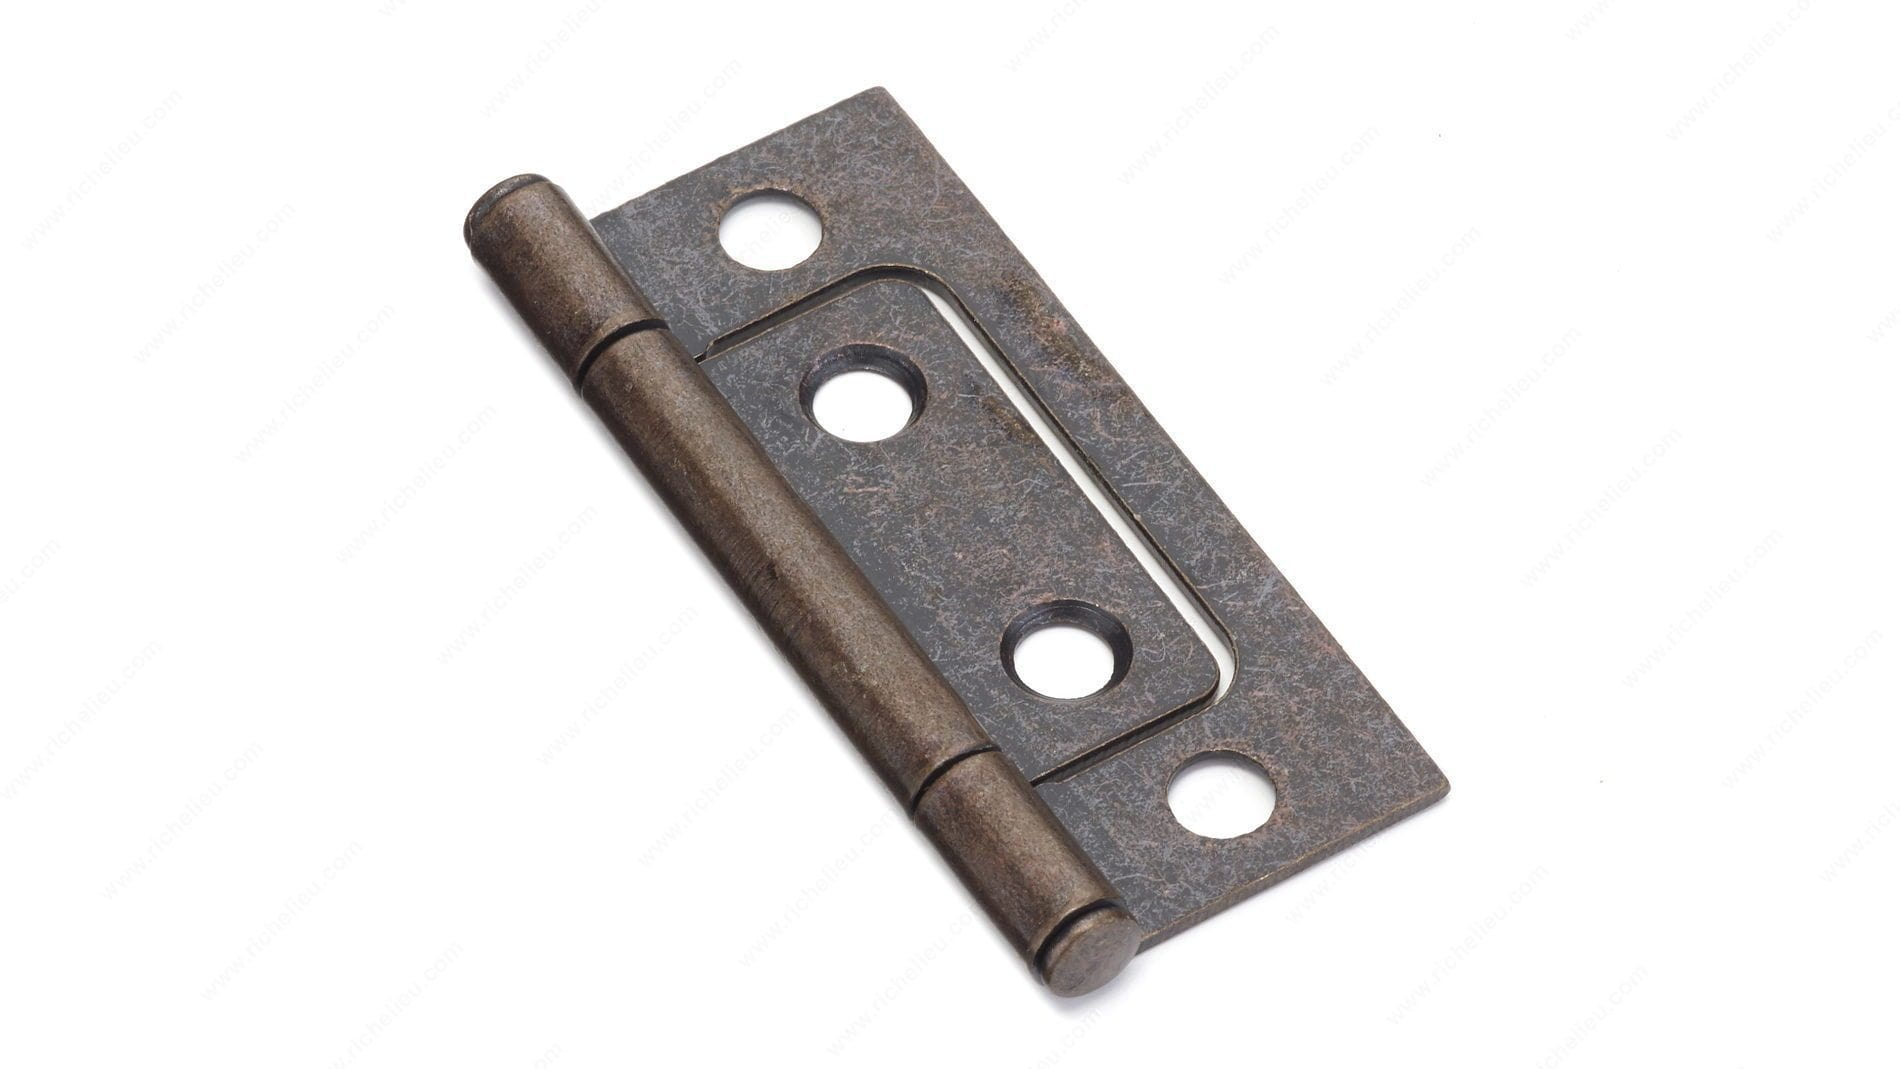 Bifold Hinges - Classic Metal Bifold Hinges - Multiple Finishes Available